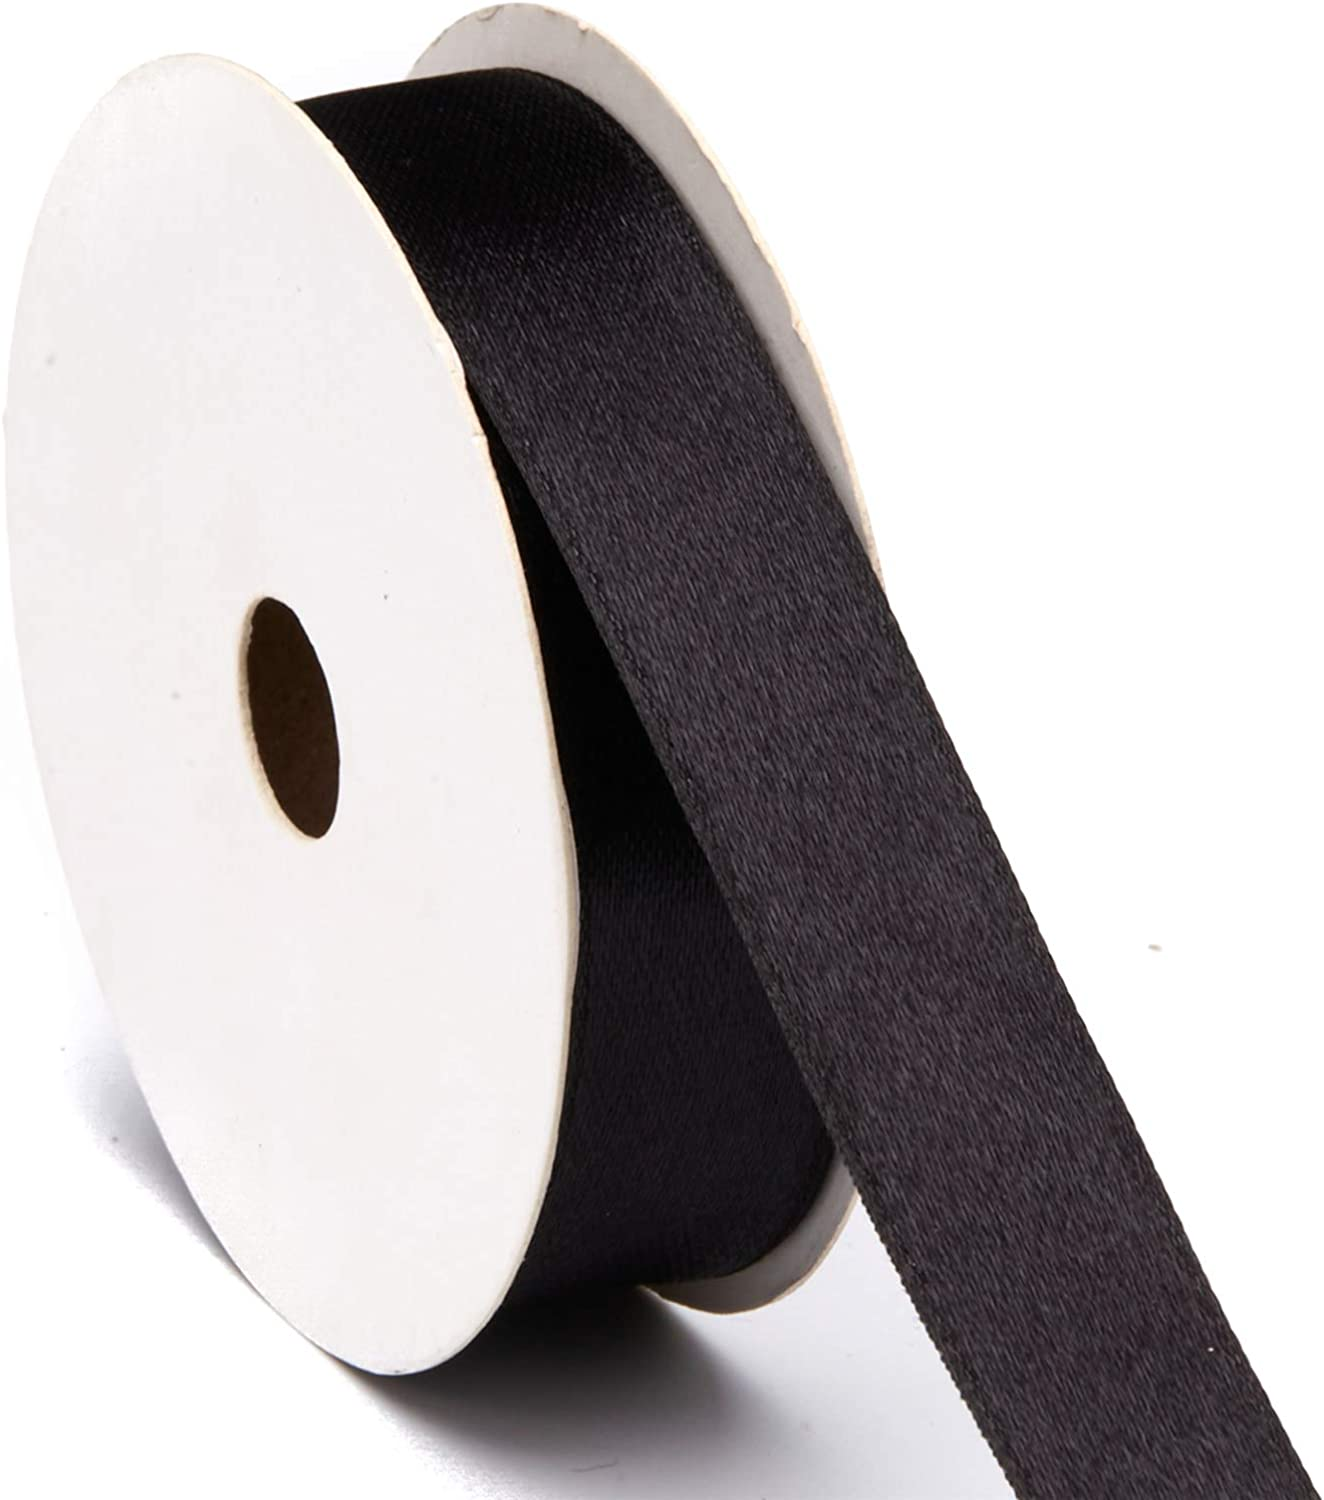 Black Satin Polyester Ribbon for Crafts Gift Wrapping Wedding Bridal Bouquet Christmas Party Home Decoration Sewing